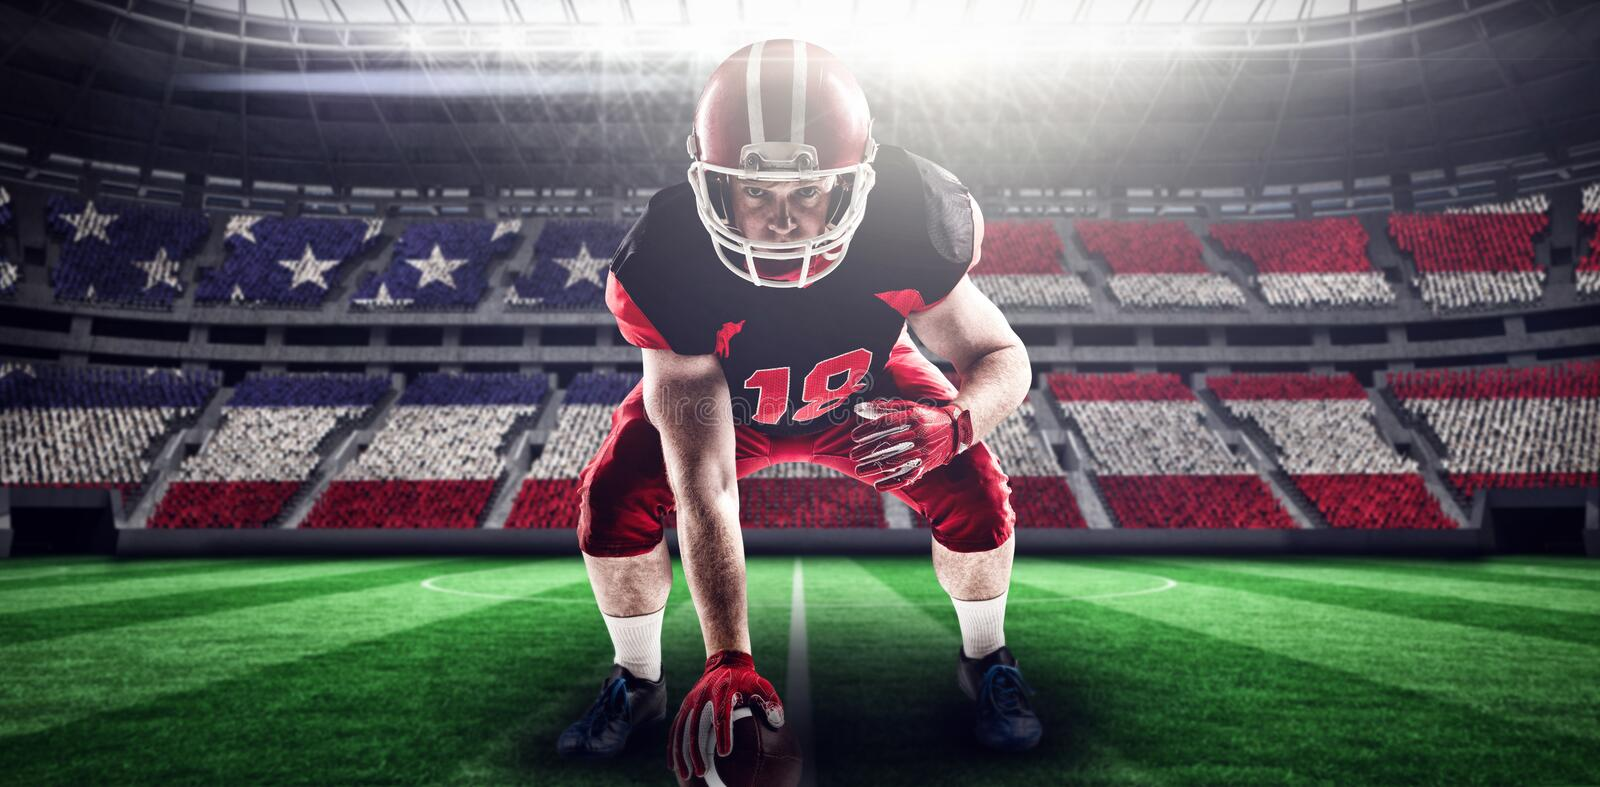 Composite image of american football player in helmet taking position royalty free stock photos